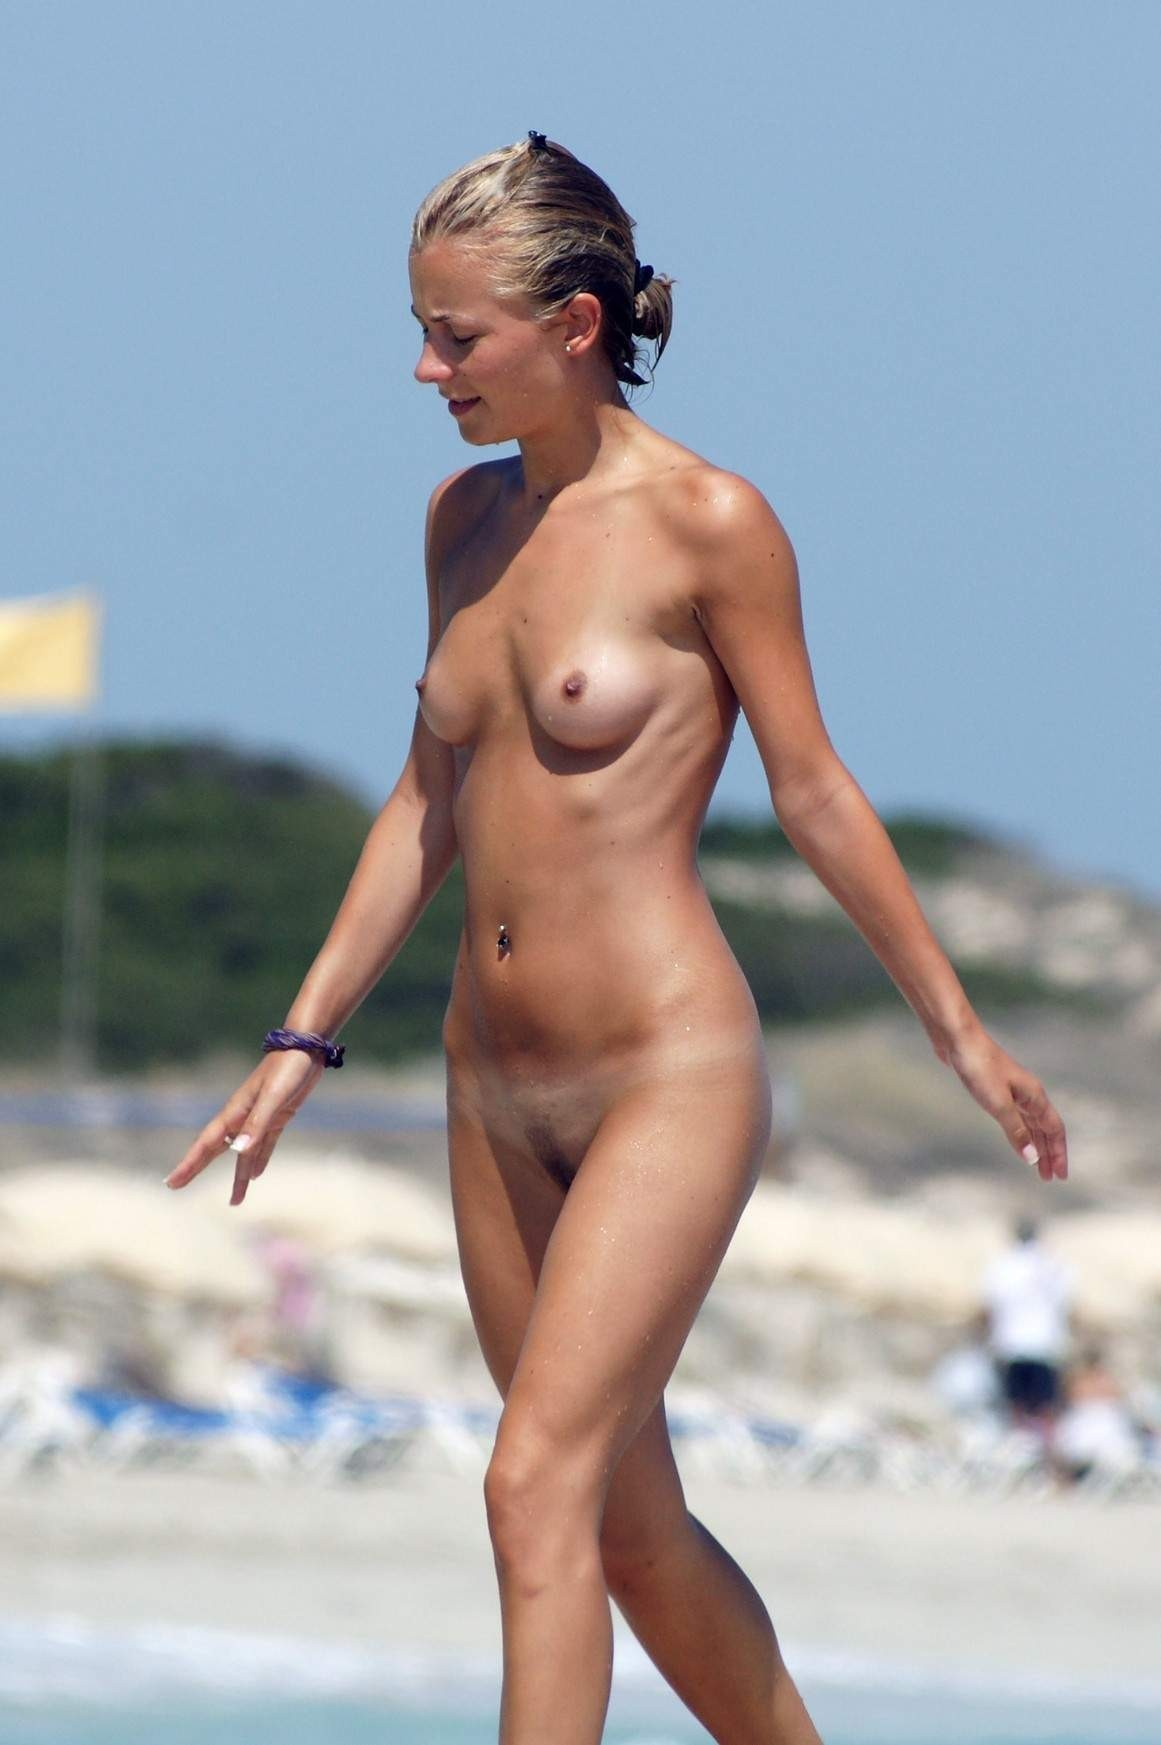 fkk nudists Nude beach, nudists, naturists, FKK